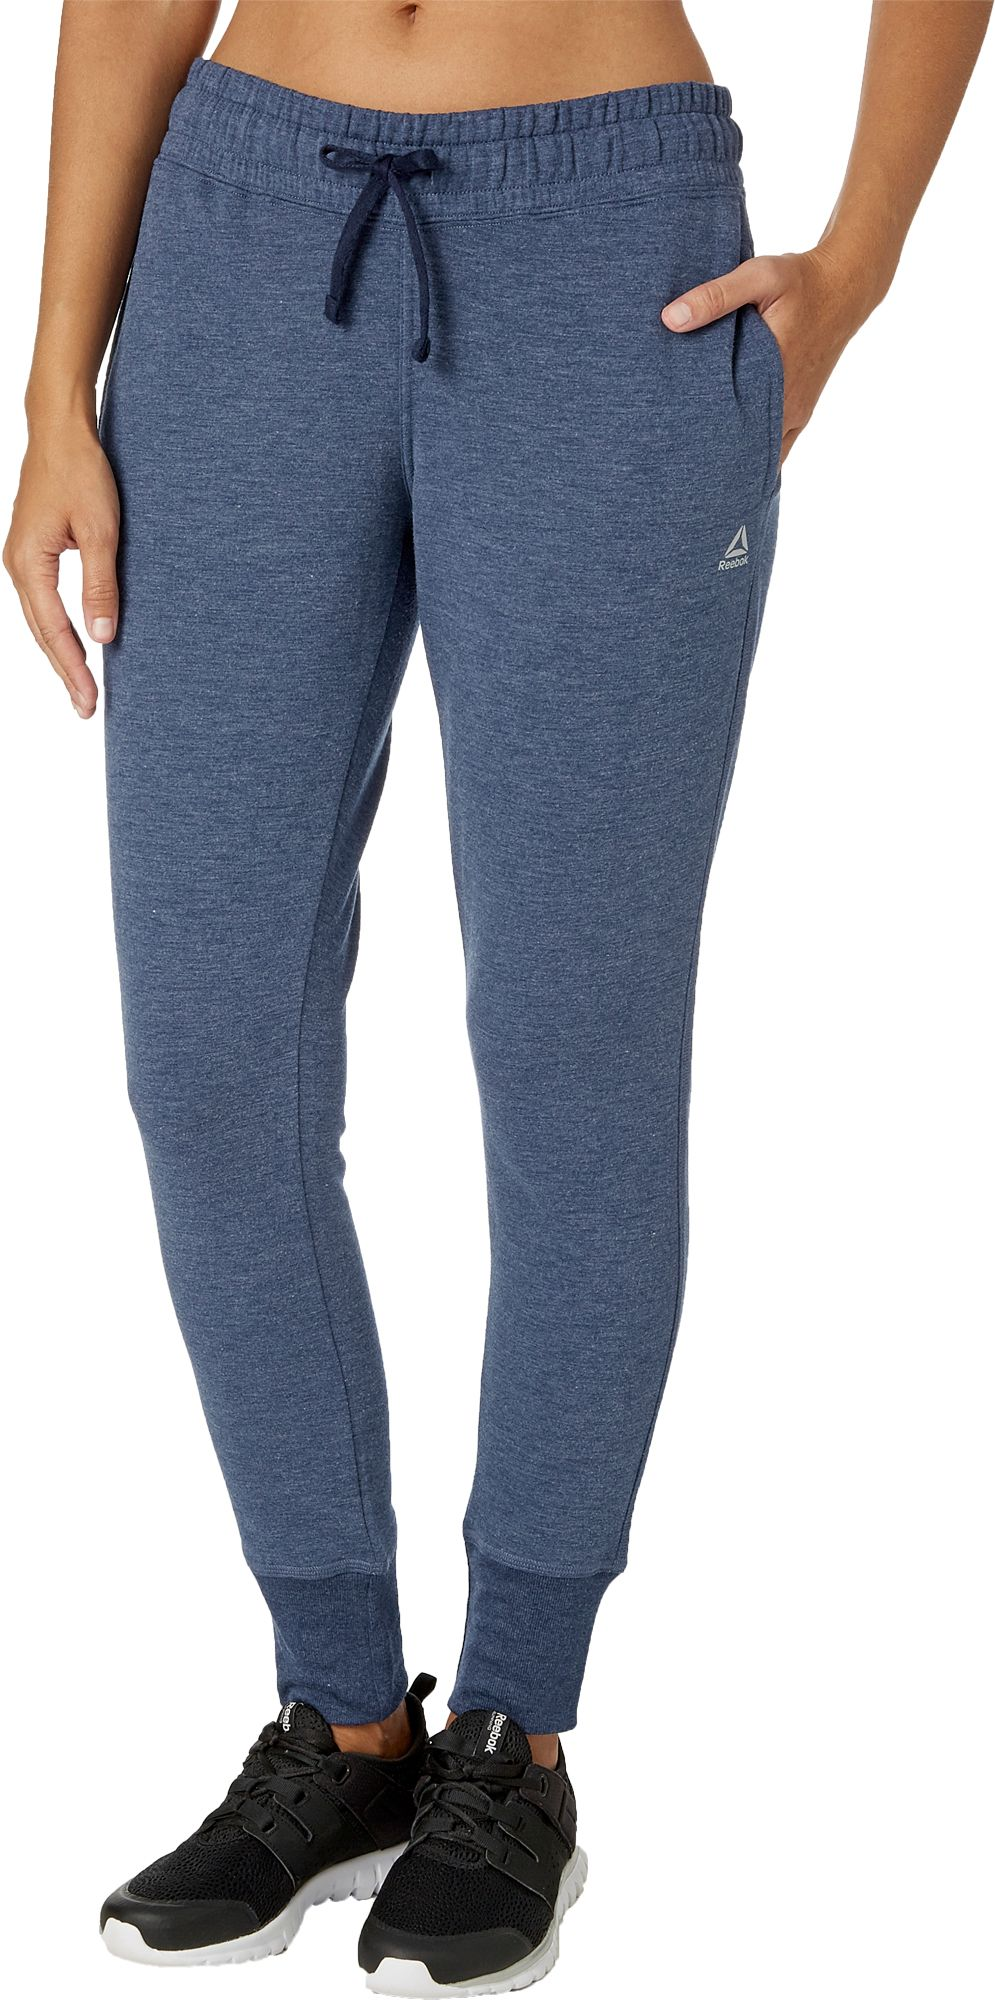 092029570822a6 Reebok Women's Fleece Jogger Pants | DICK'S Sporting ...